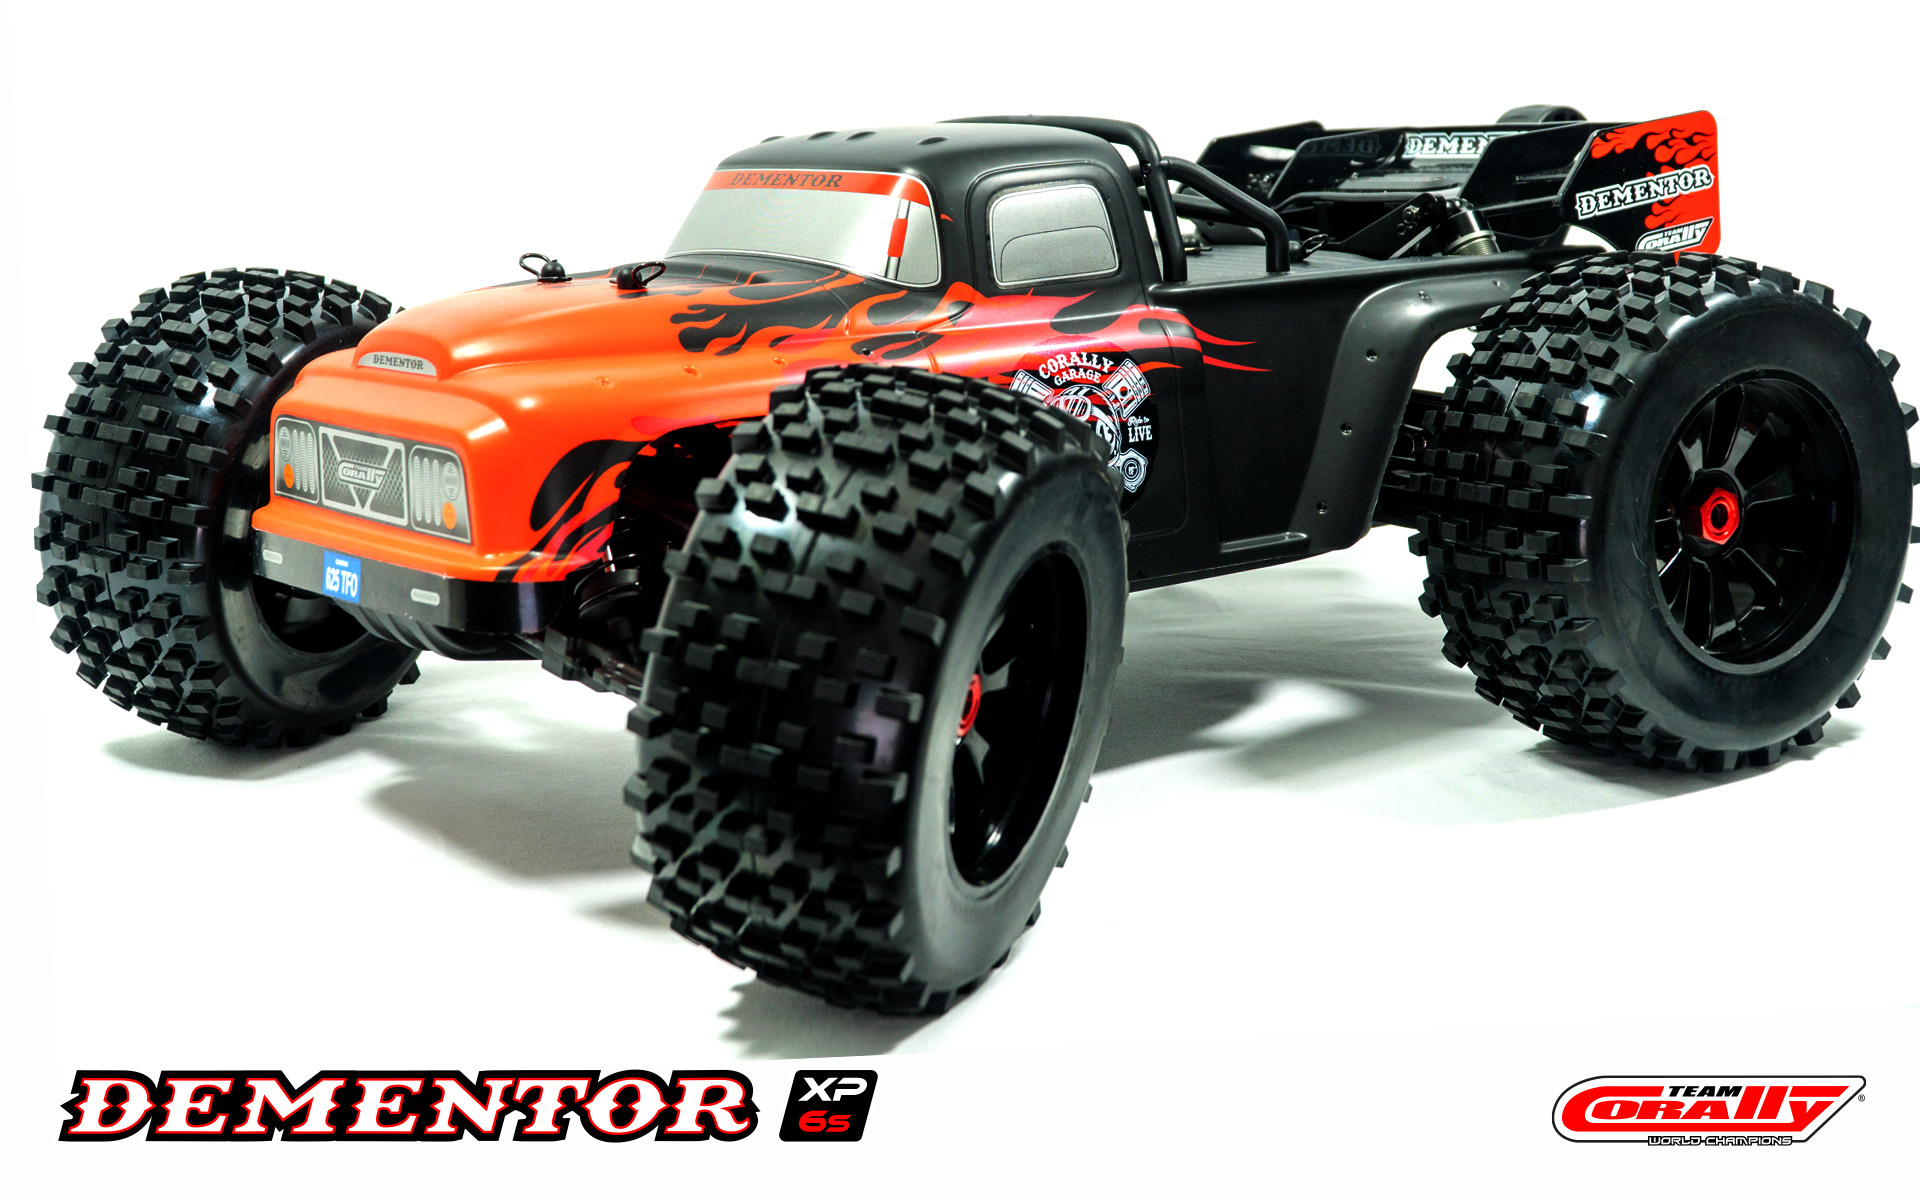 1/8 Dementor XP 6S 4WD Monster Truck Brushless RTR